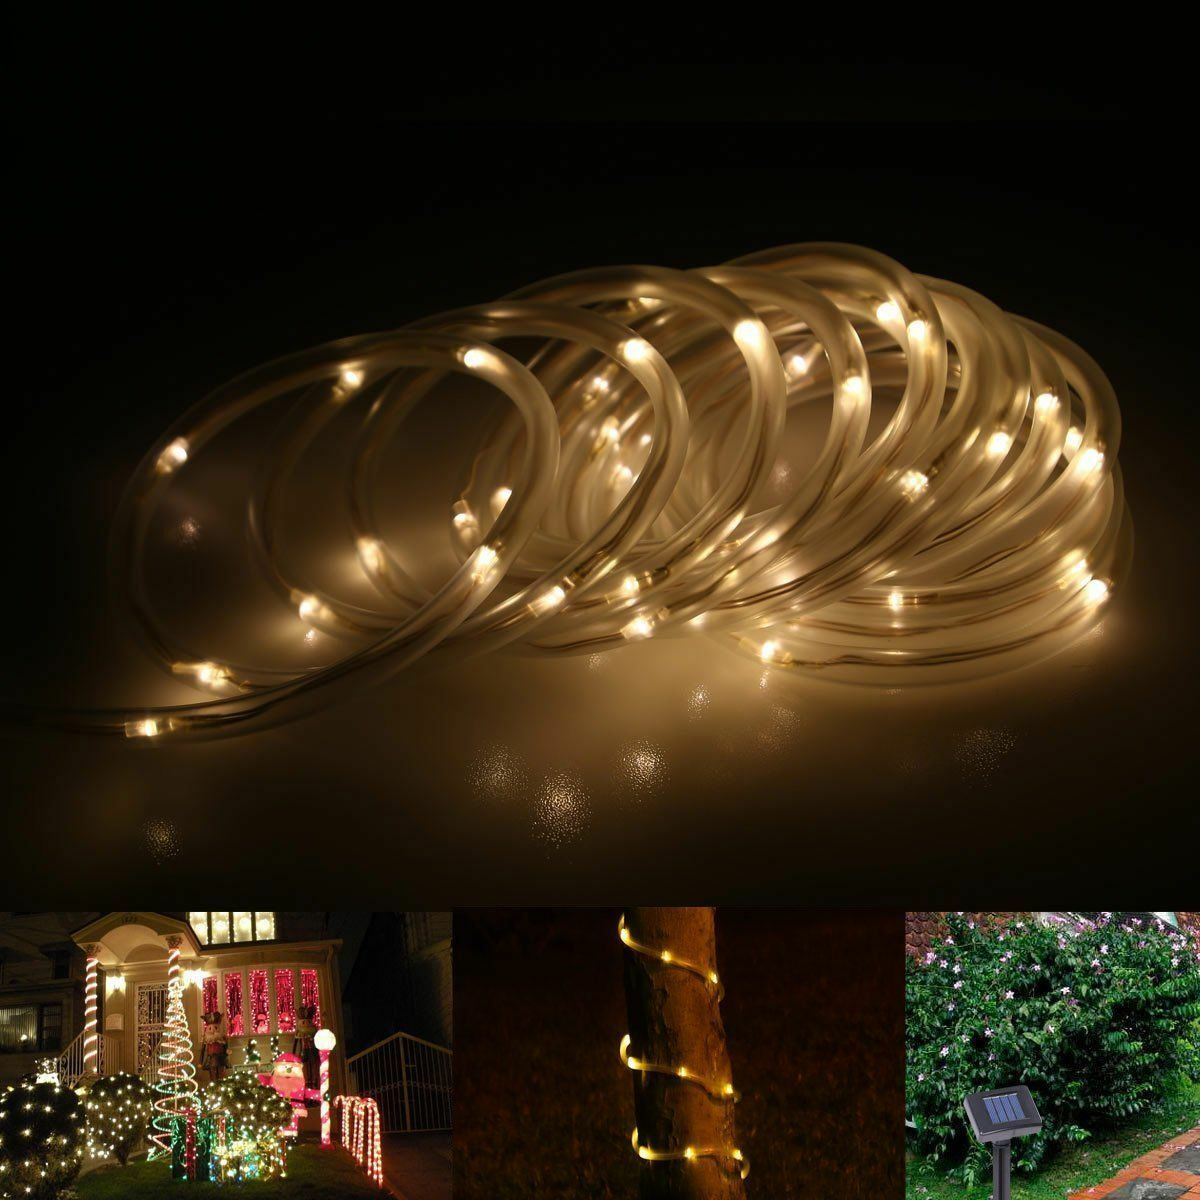 solar rope tube lights led string strip waterproof outdoor garden 100leds ebay. Black Bedroom Furniture Sets. Home Design Ideas